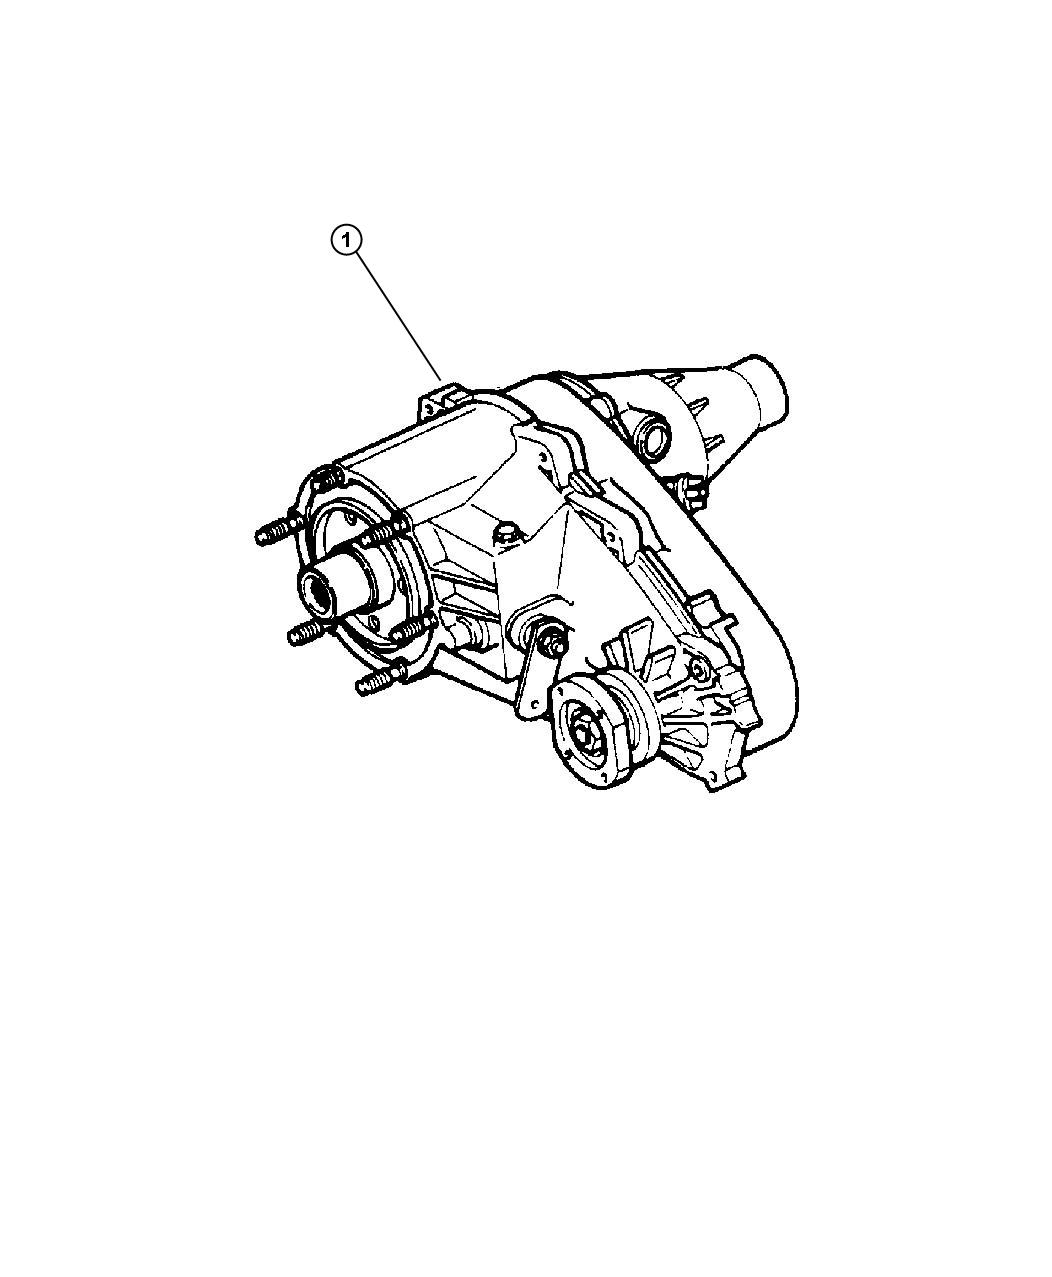 Dodge Express Transfer case. Nv233. Remanufactured. Time